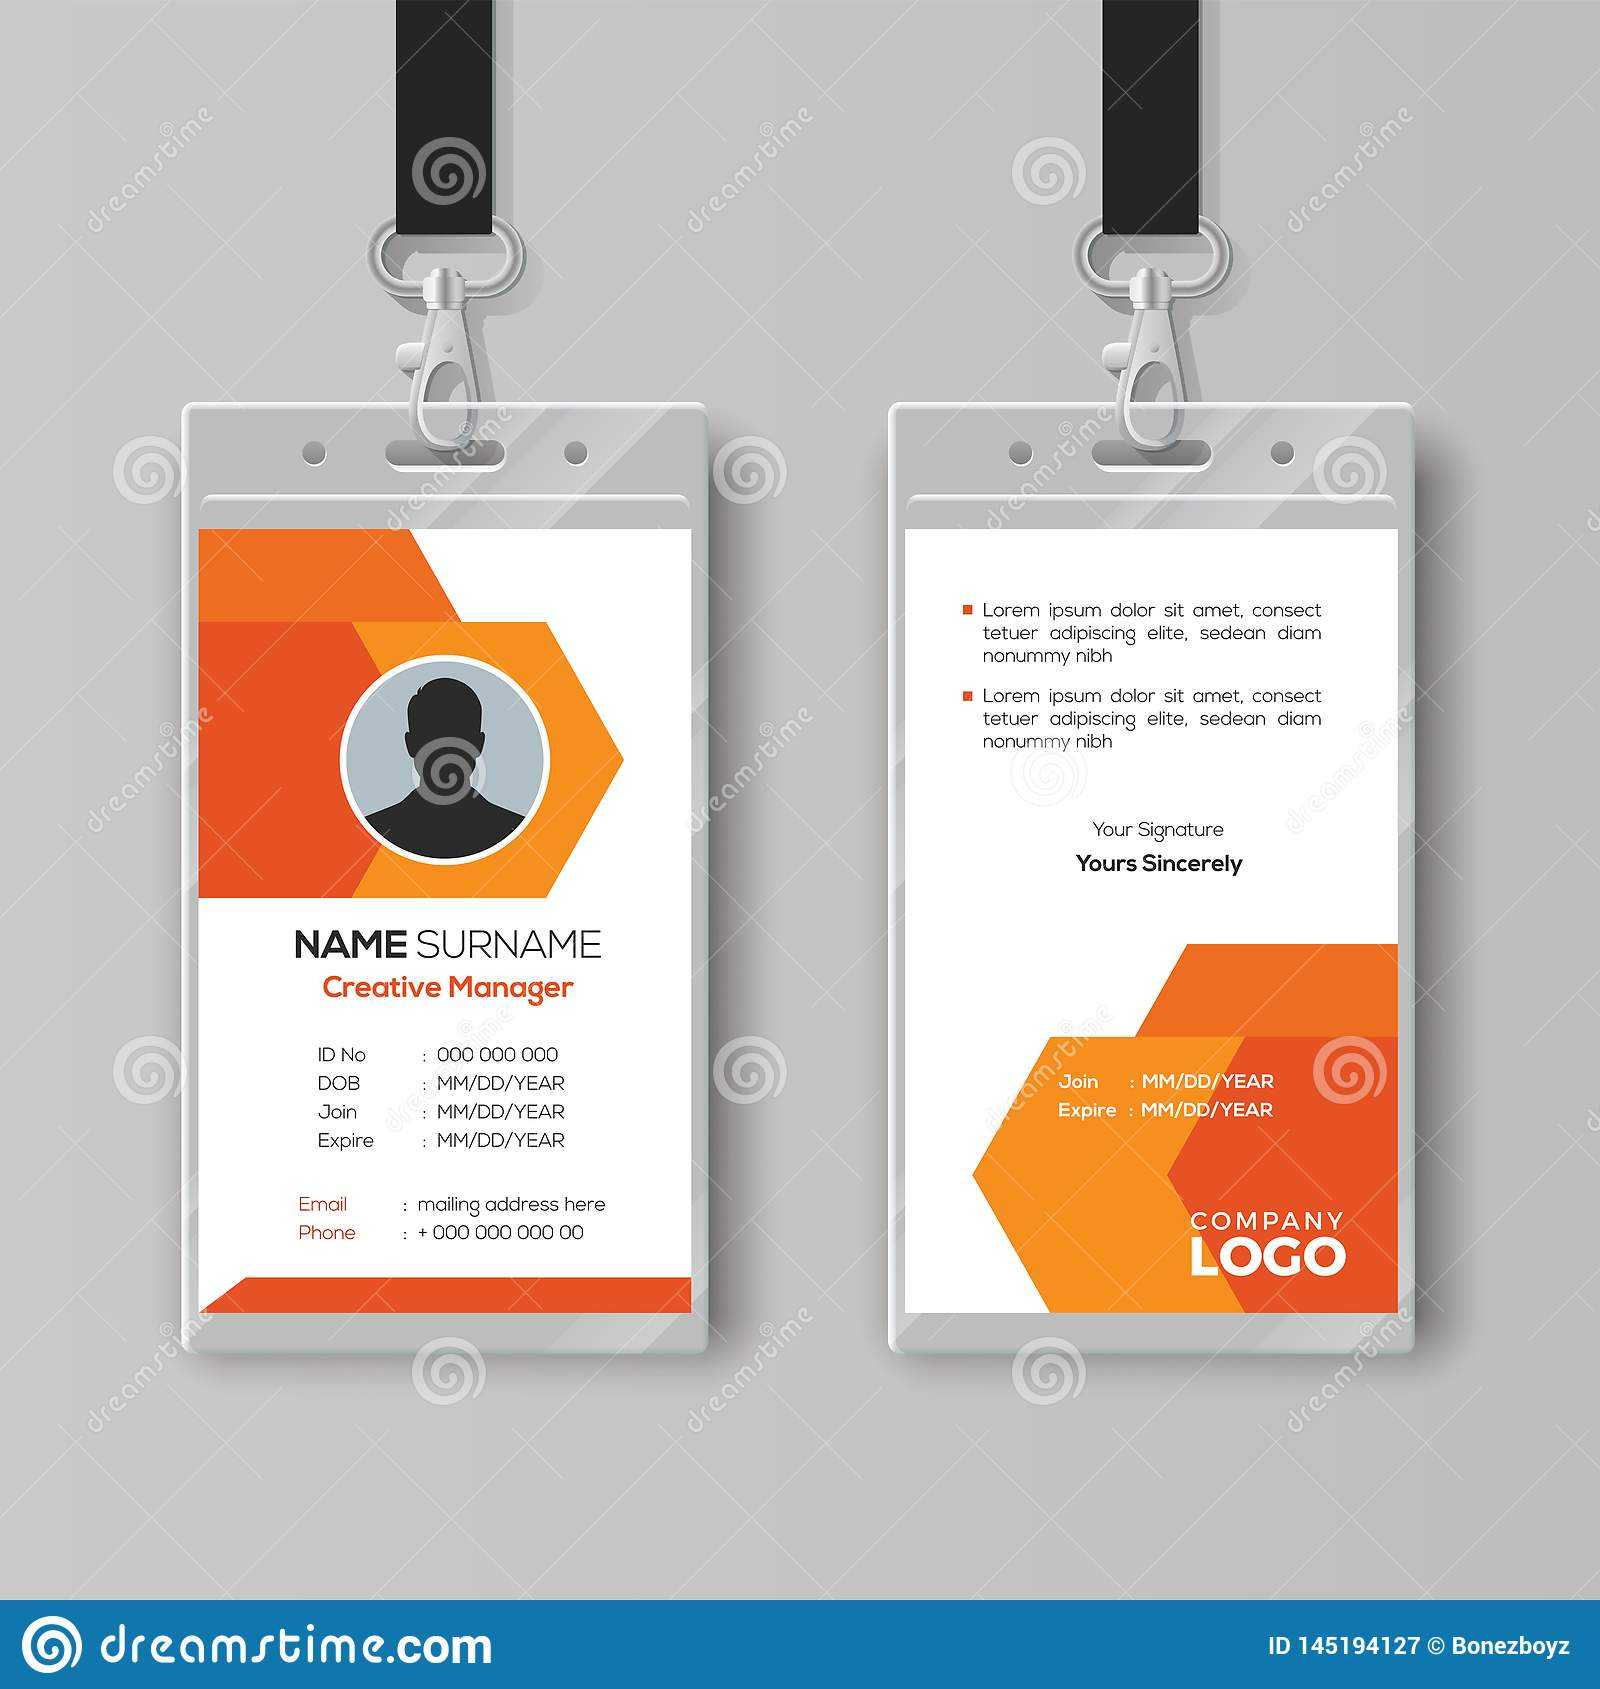 Abstract Orange Id Card Design Template Stock Vector Inside Company Id Card Design Template